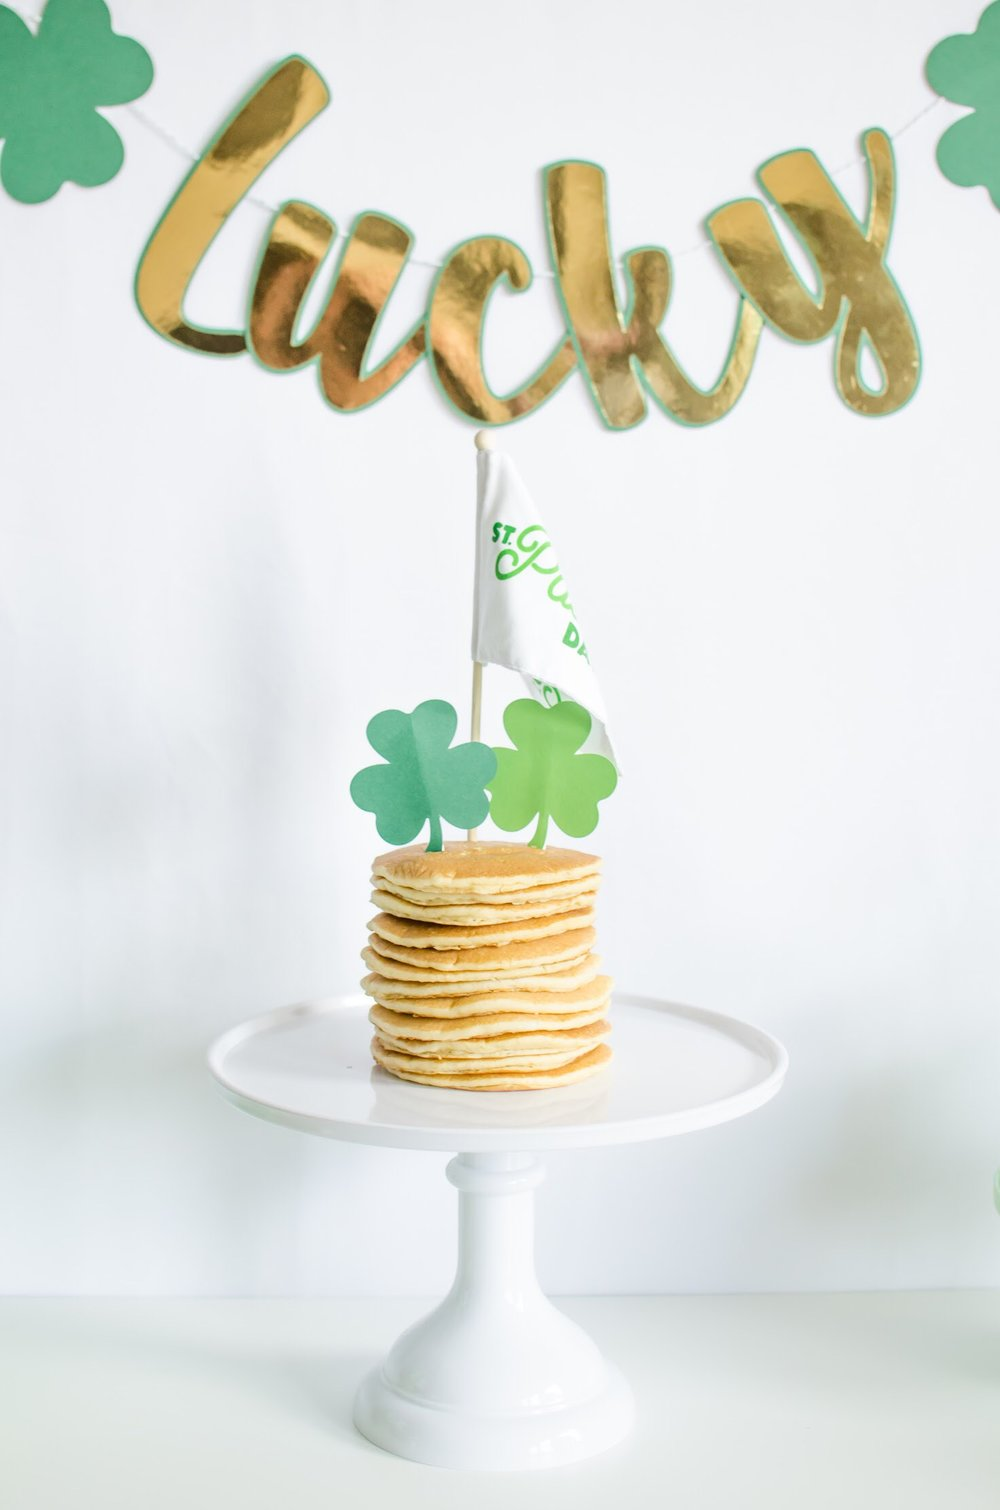 Stacked Pancakes with shamrocks and a flag on top are the perfect breakfast choice for Saint Patricks Day. See all the green party details on Mint Event Design www.minteventdesign.com #partyideas #partydecorations #breakfastfood #saintpatricksday #stpatricksday #pancakes